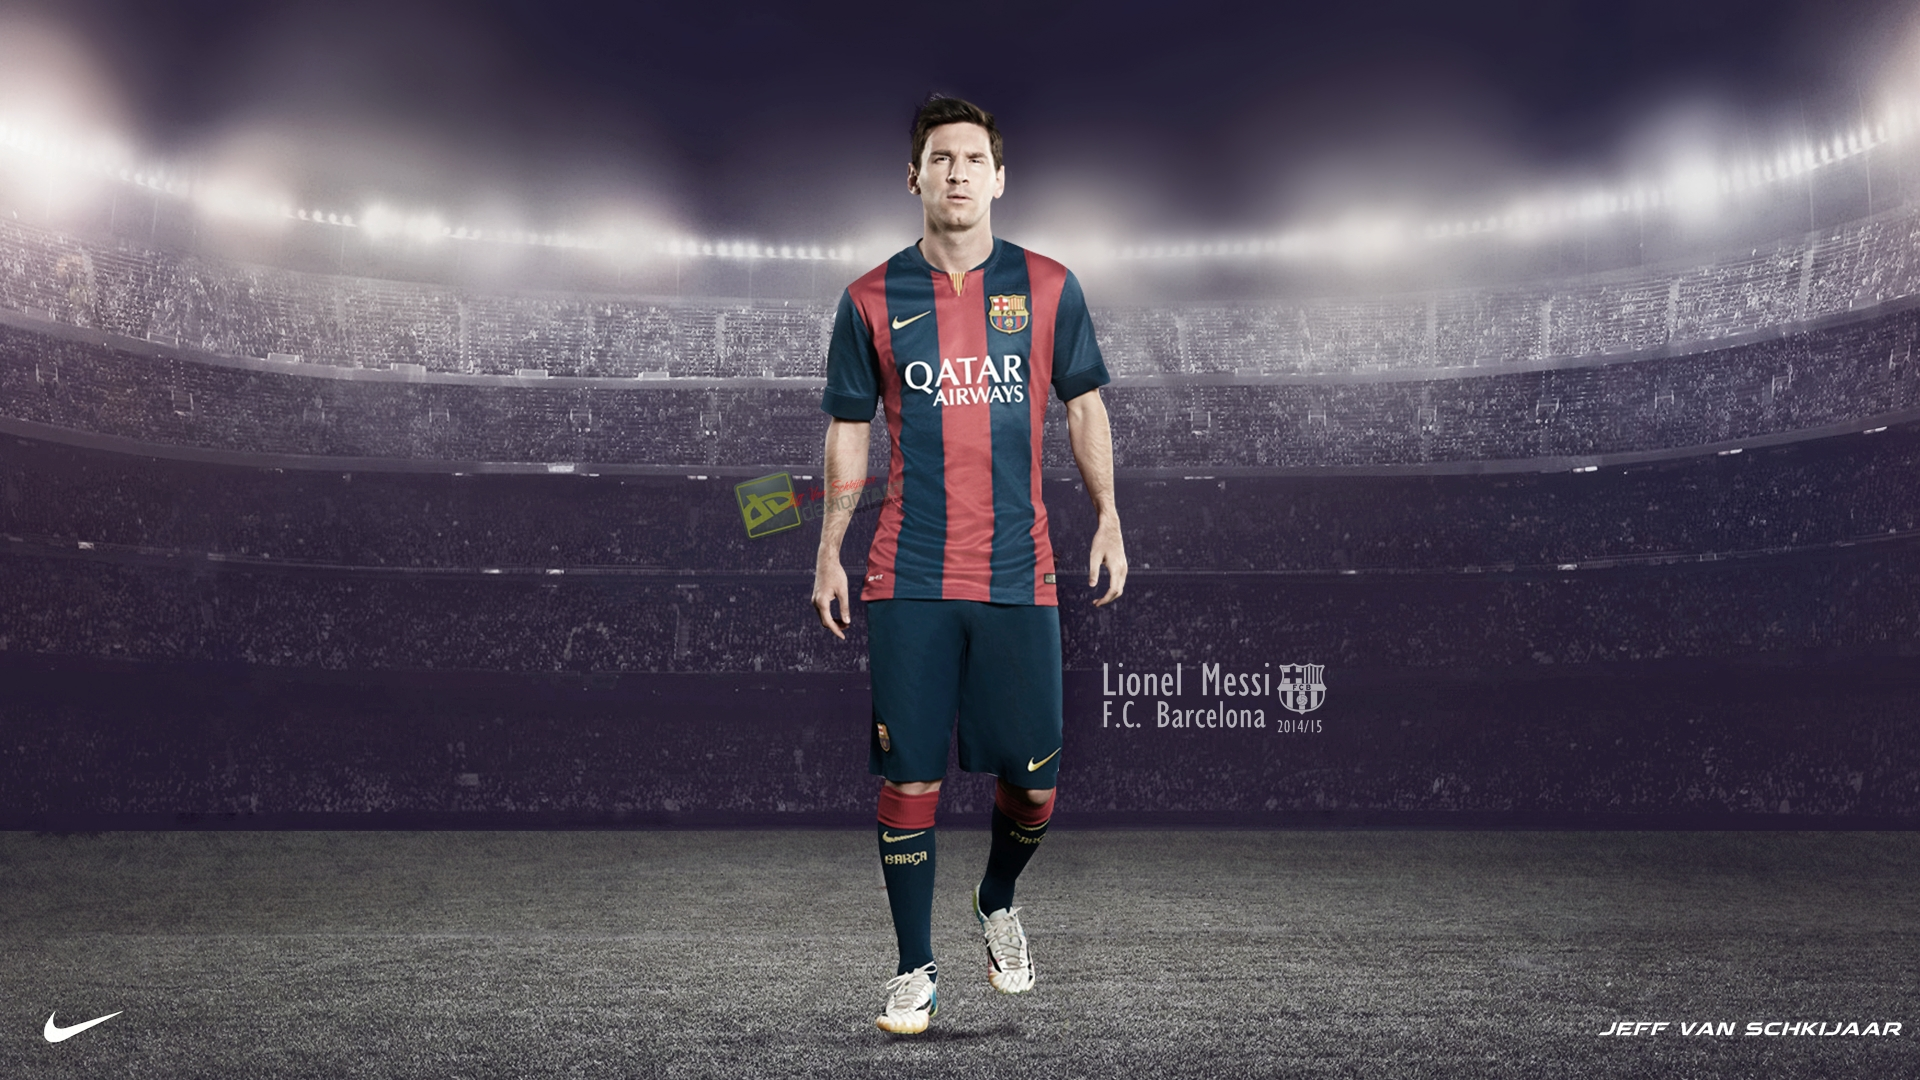 Lionel Messi Wallpapers 2015 | Top Collections Of Pictures, Images .